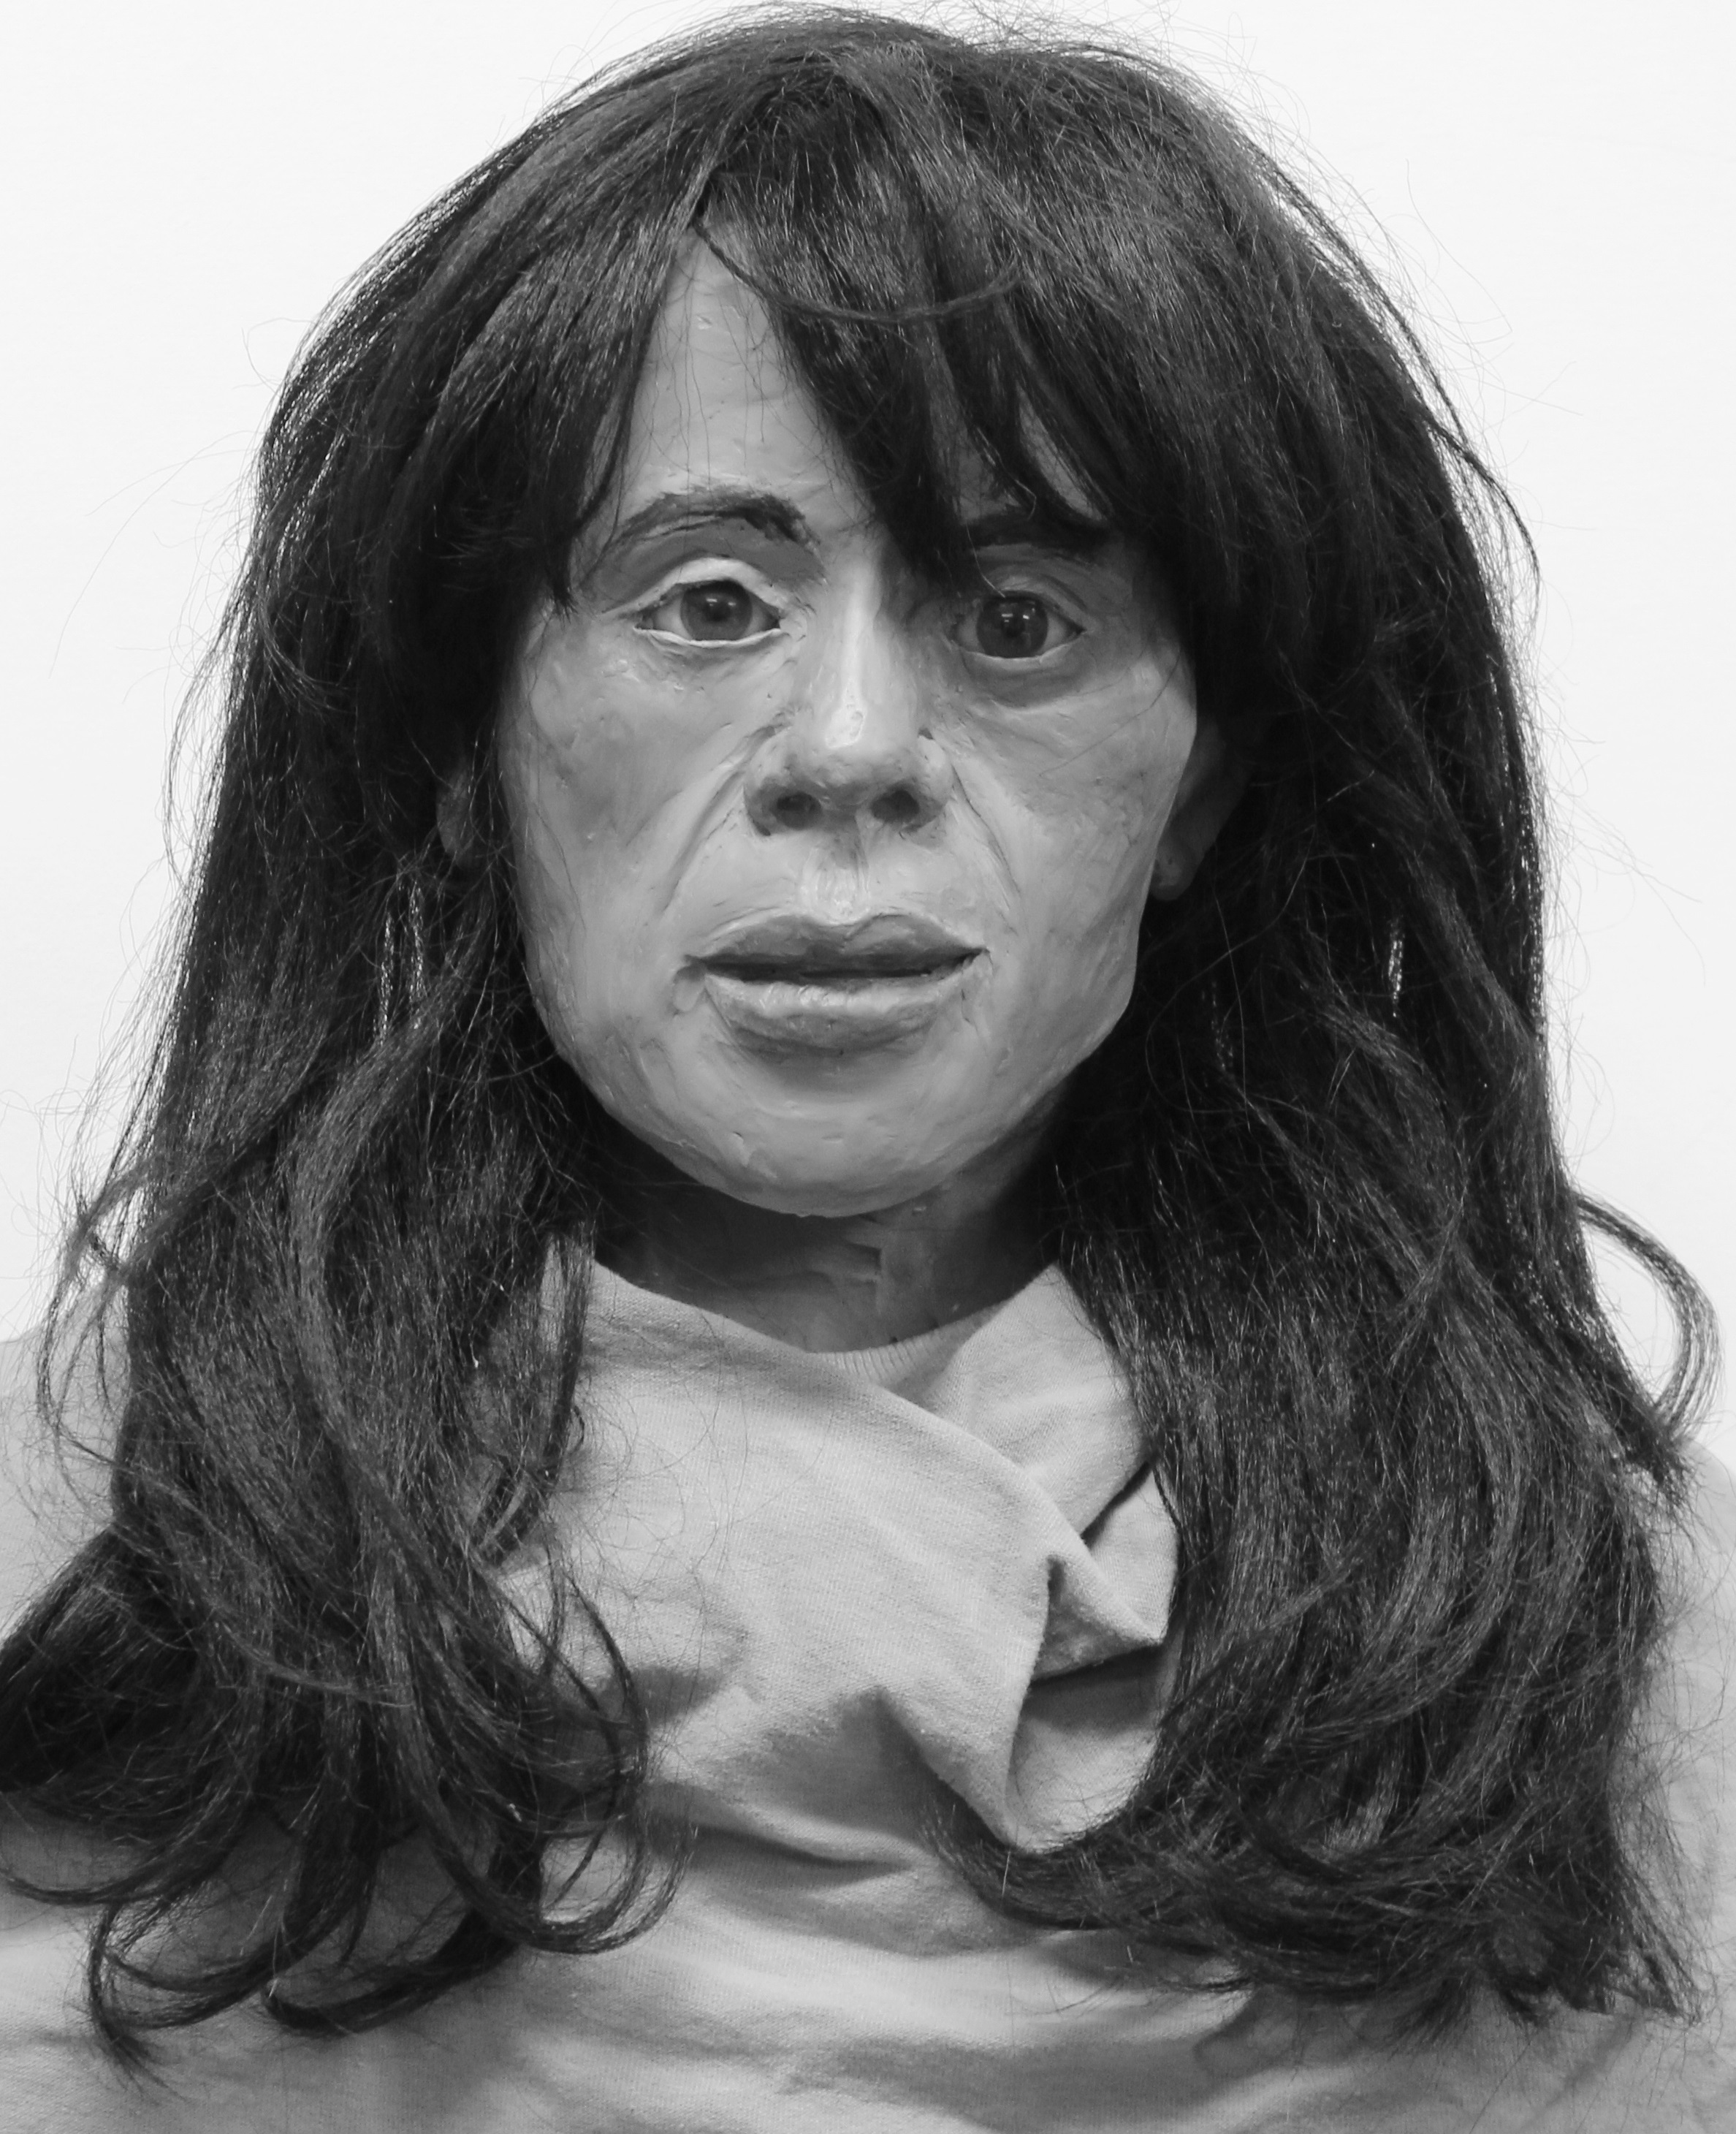 Ottawa County Jane Doe (2015)